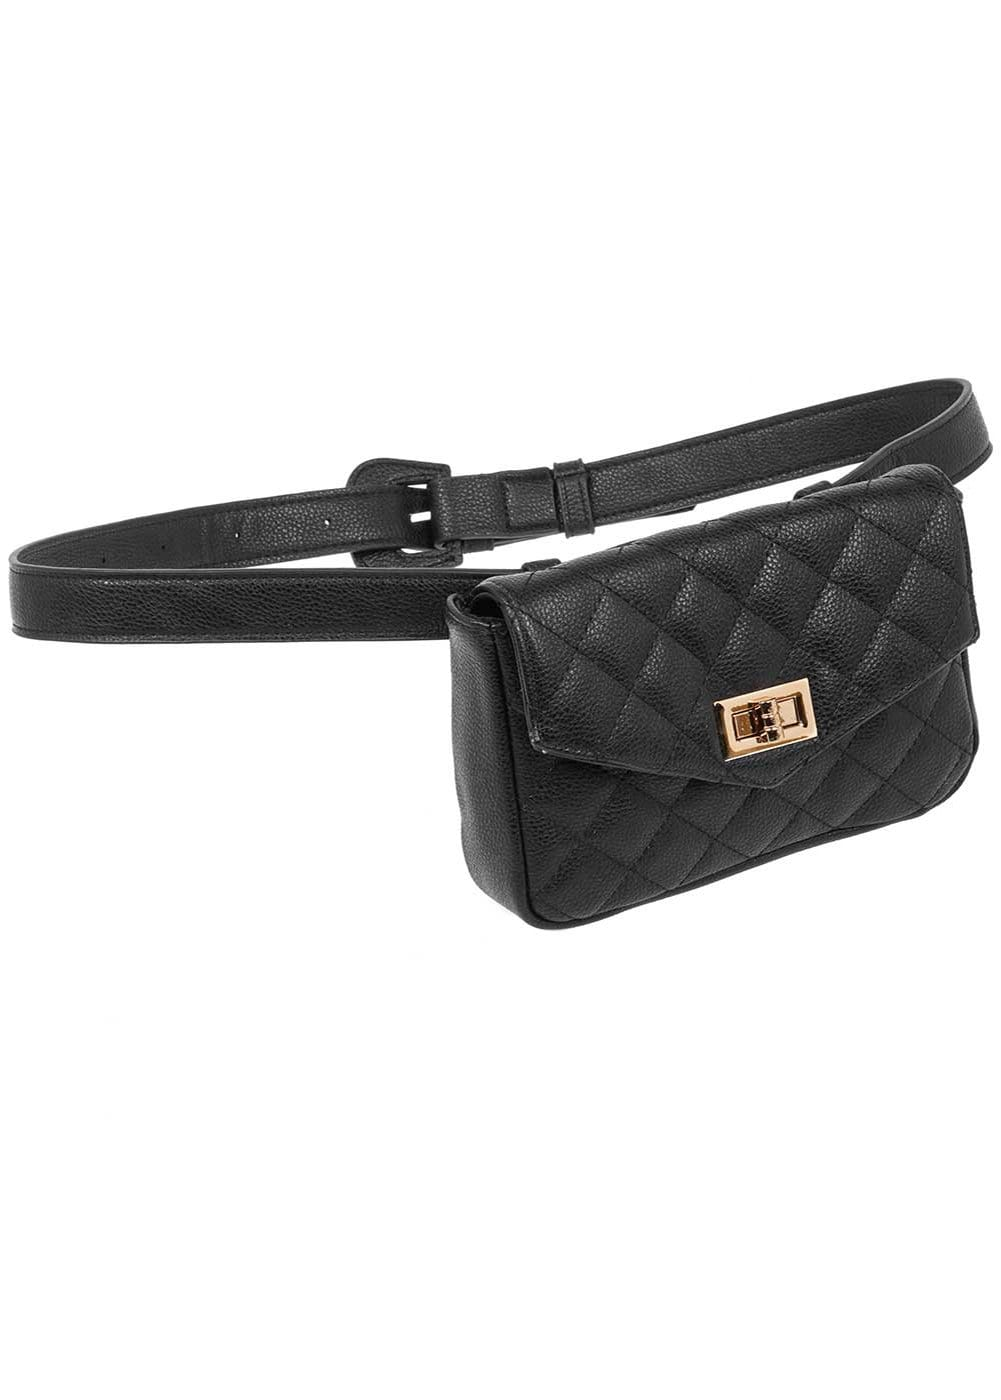 Girls Black Bum Bag-Front